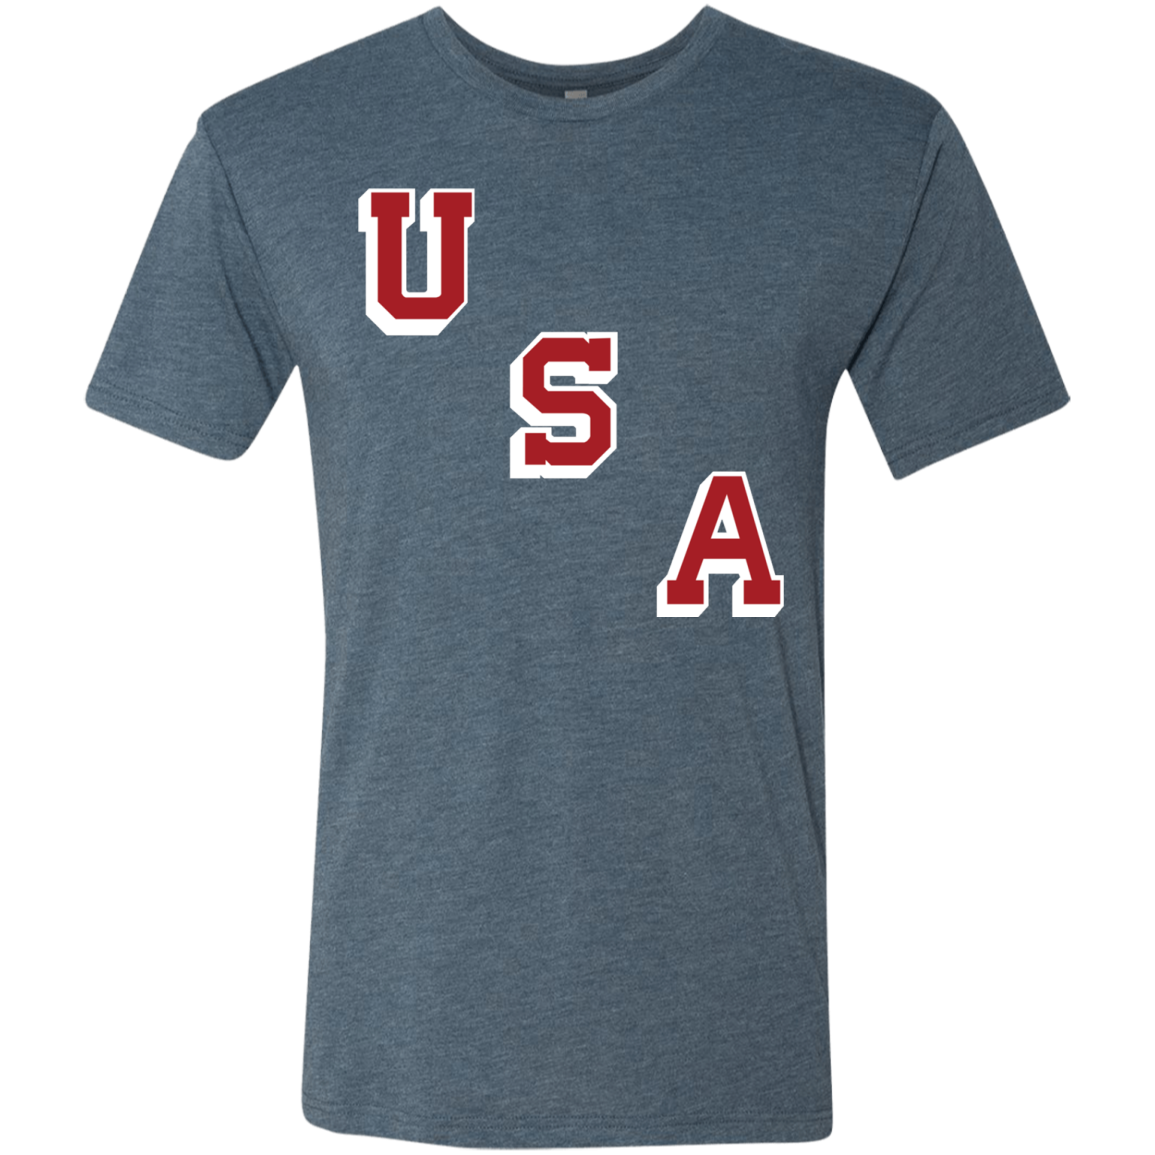 USA 1960 Forgotten Miracle Men's Triblend T-Shirt - PhillyFandom T-Shirts - Shirts PhillyFandom Philly Sports Tees